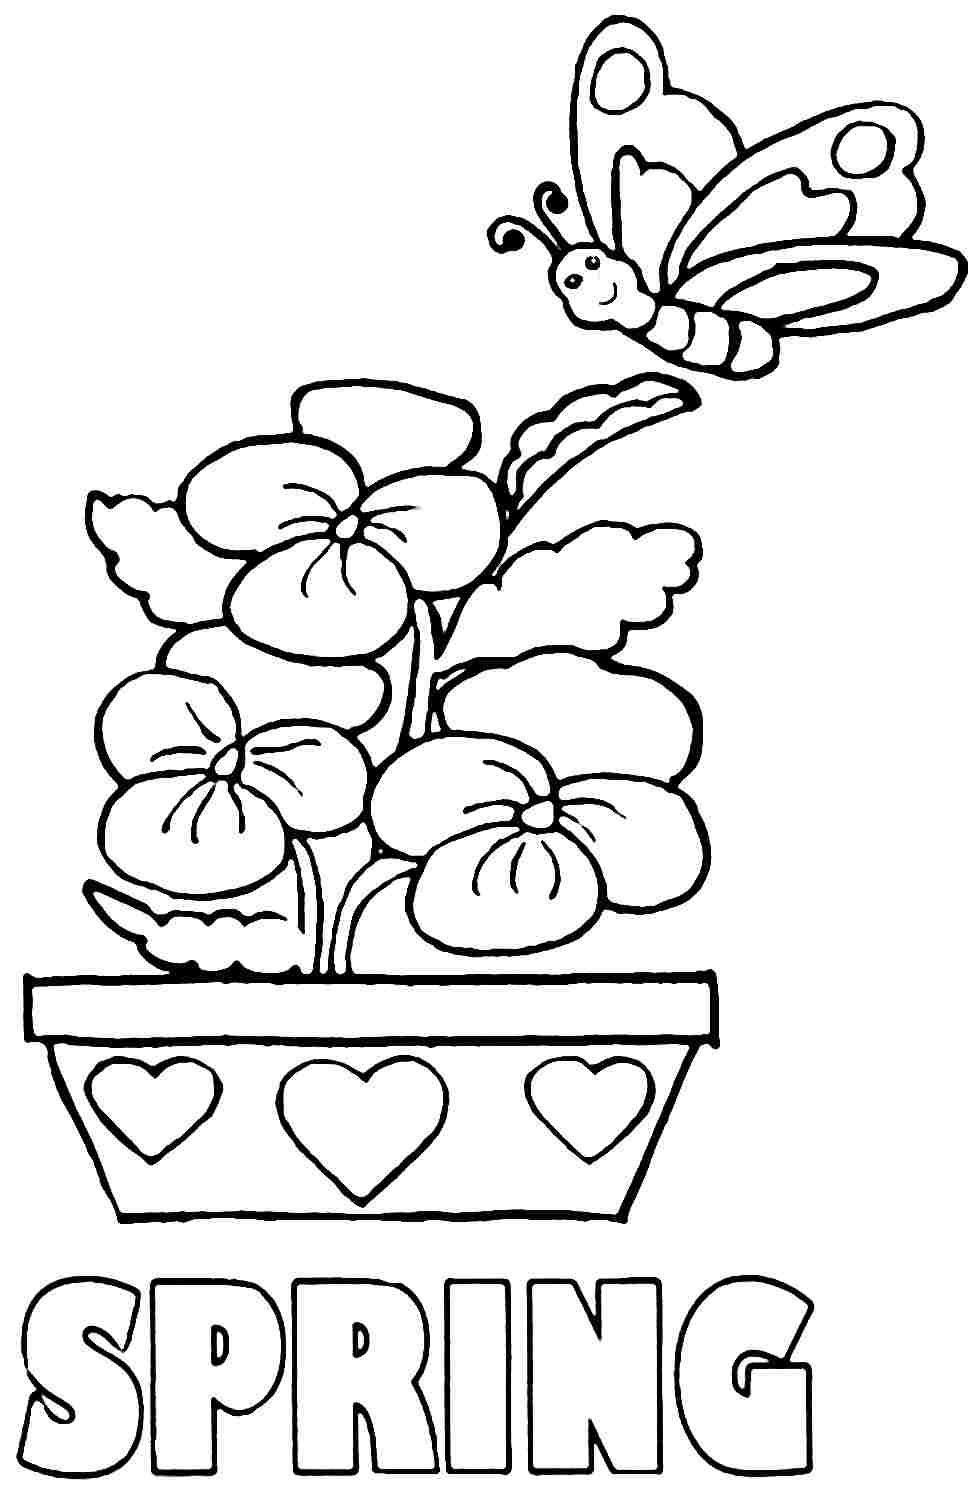 Easy Coloring Pages For Kids at GetColorings.com | Free ... | free printable coloring pages easy